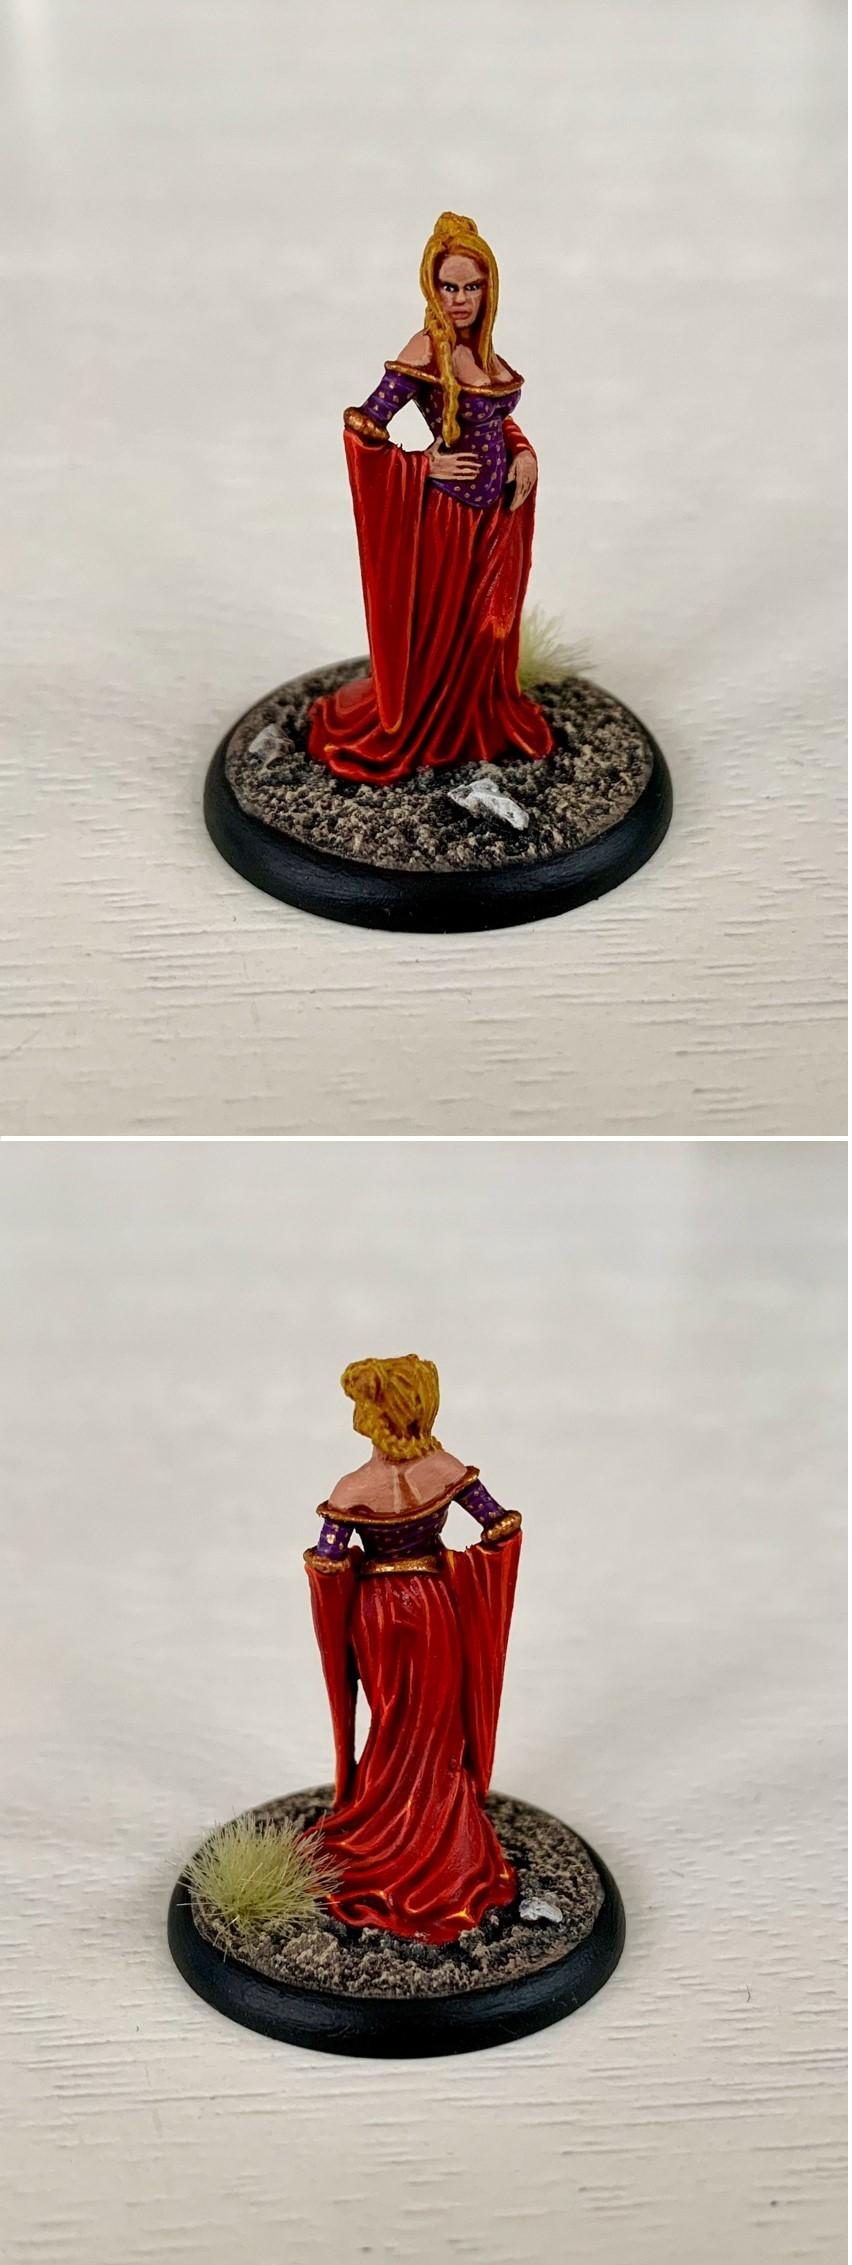 Female, Game Of Thrones, Warhammer Fantasy